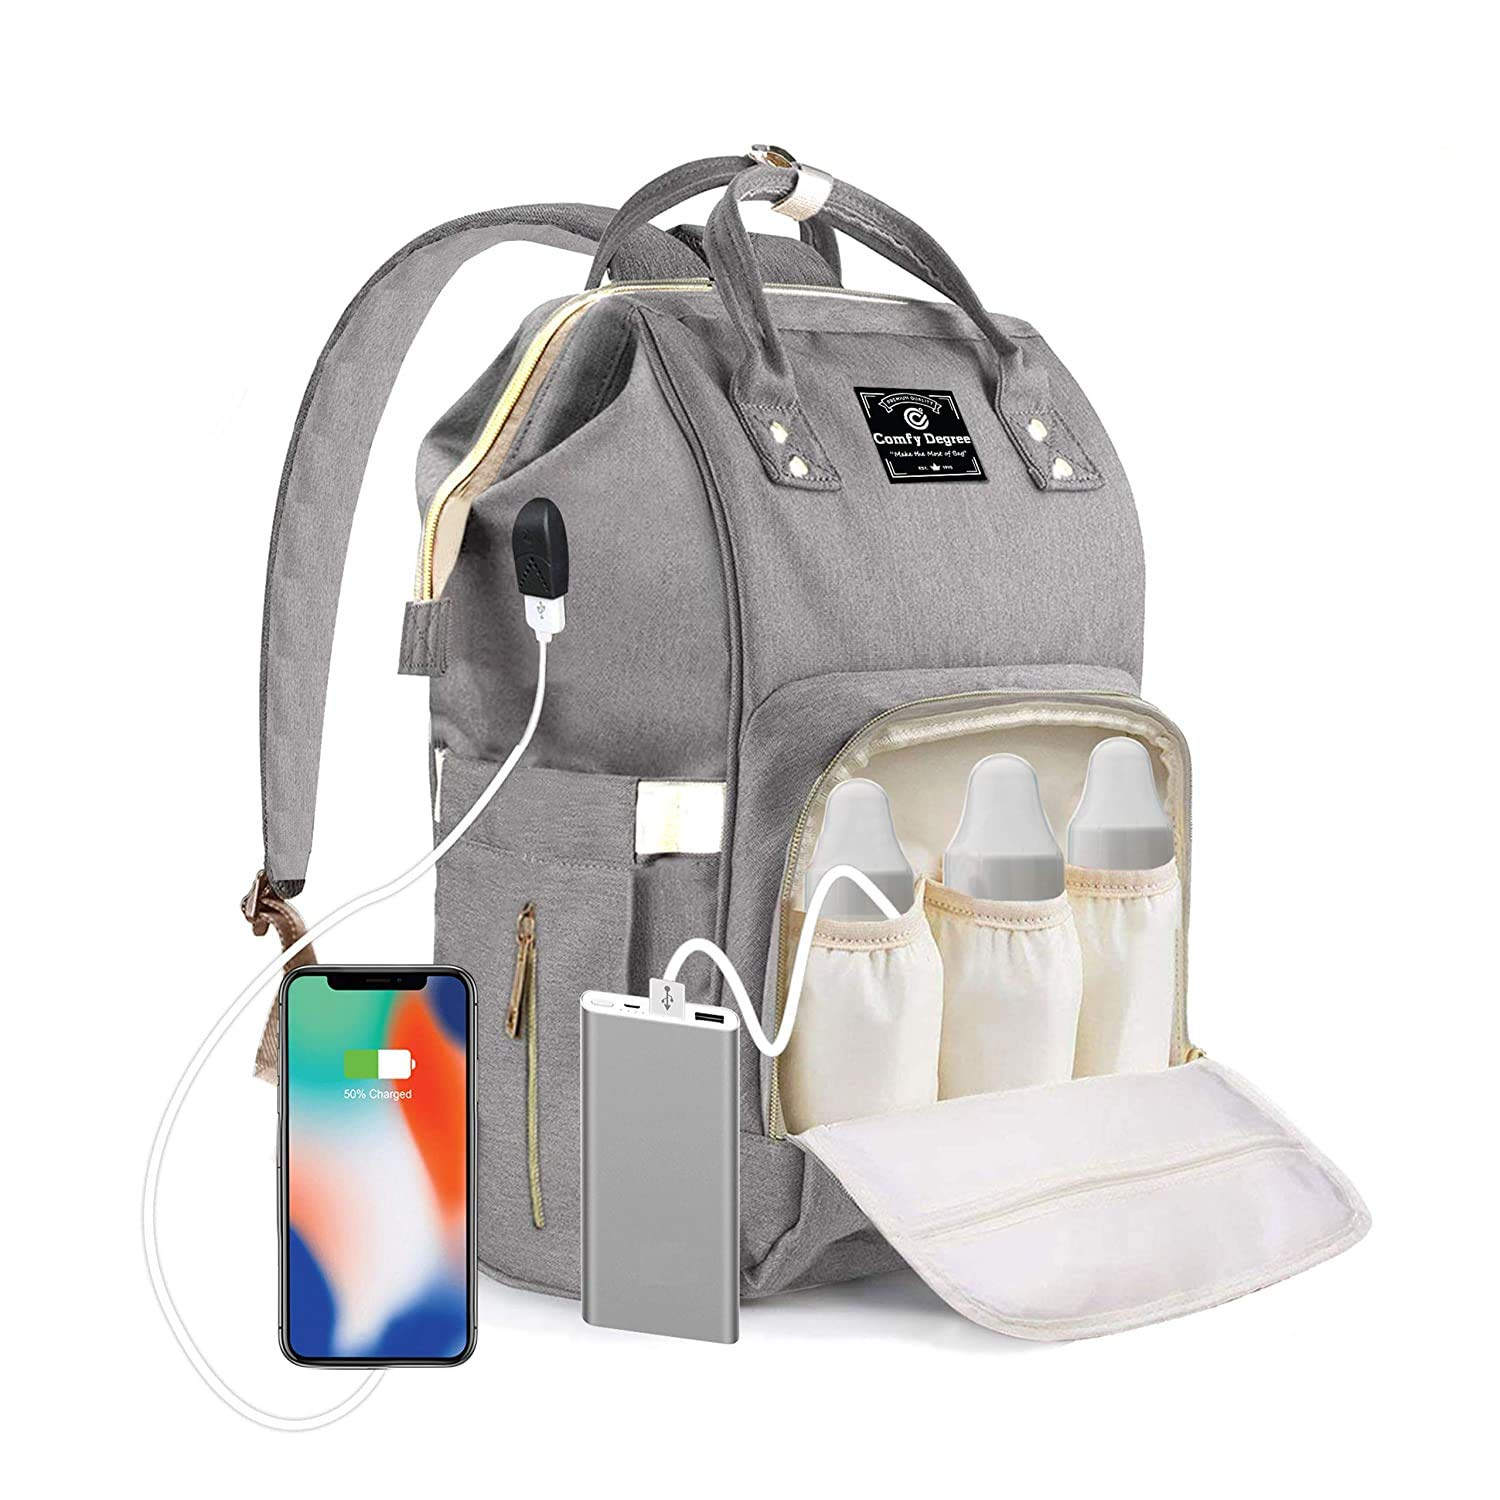 ComfyDegree Baby Changing Bag Backpack Waterproof Multi-Function Large Capacity Diaper Bag Rucksack with USB Port, Stroller Straps & 3X Insulated Bottle Warmer Pockets for Mom and Dad (Gray)